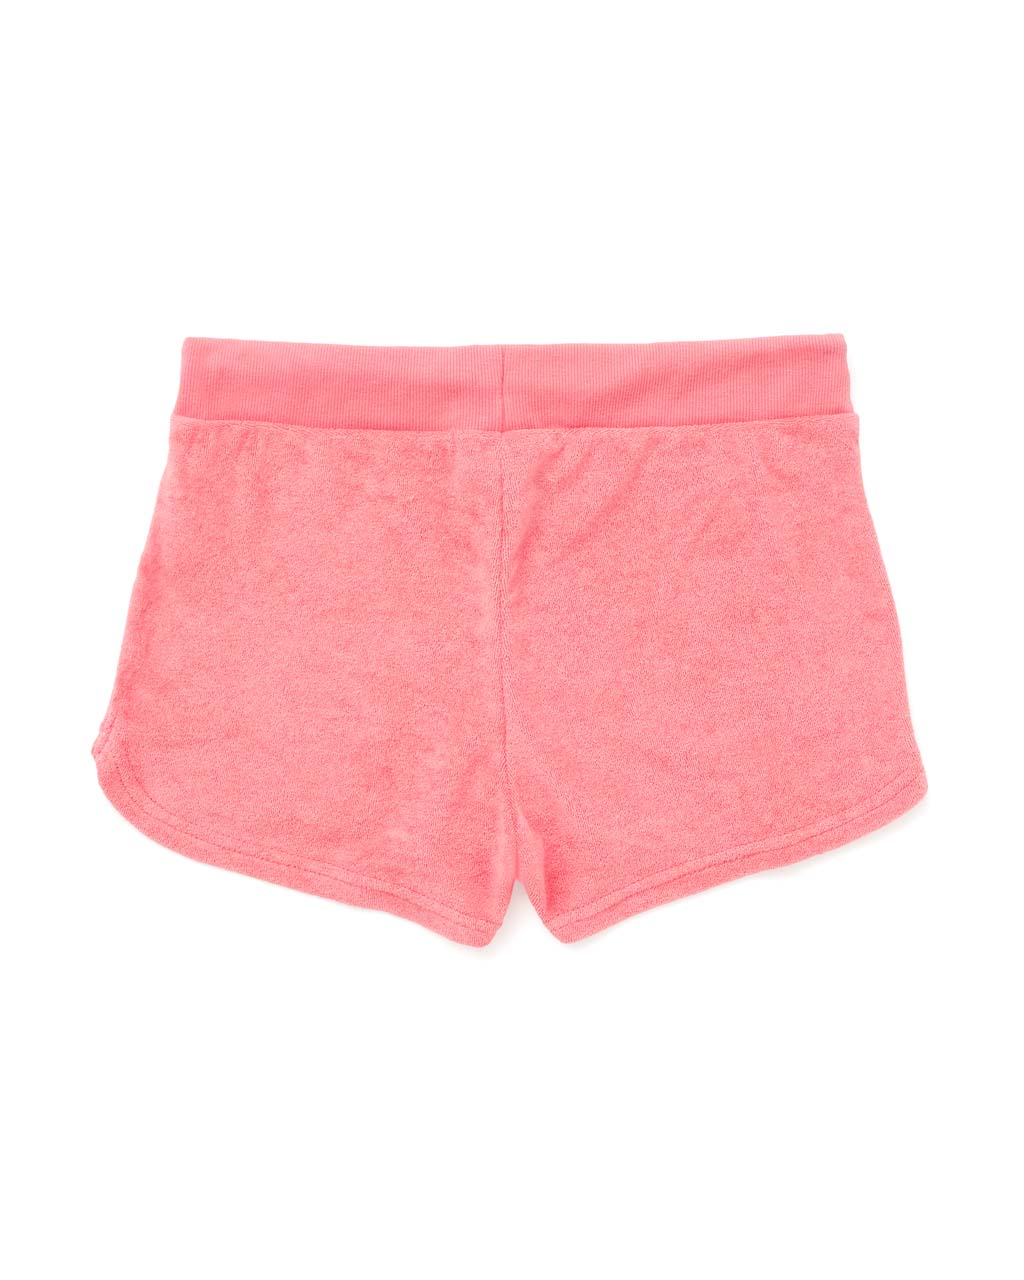 Breezy Short - Strawberry Pink